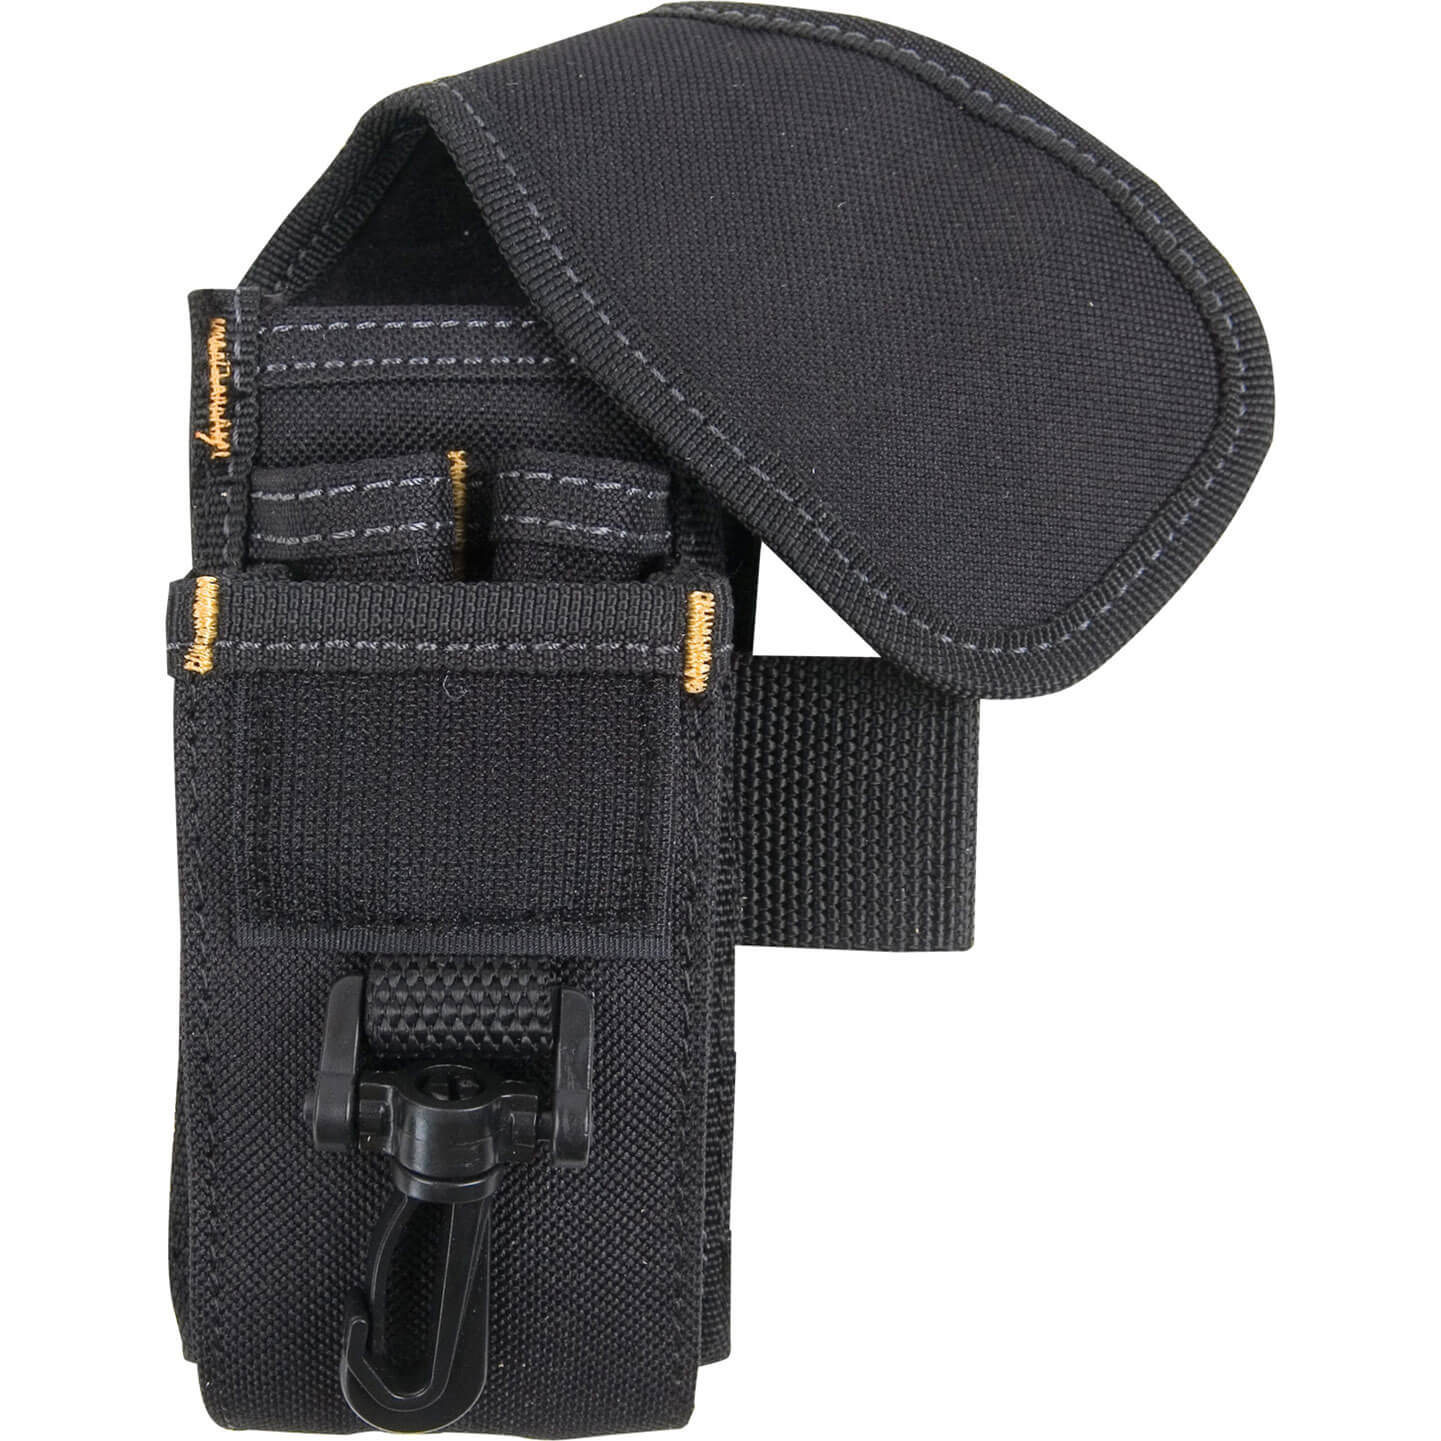 Image of Kunys 5 Pocket Mobile Phone Pouch & Tool Holder